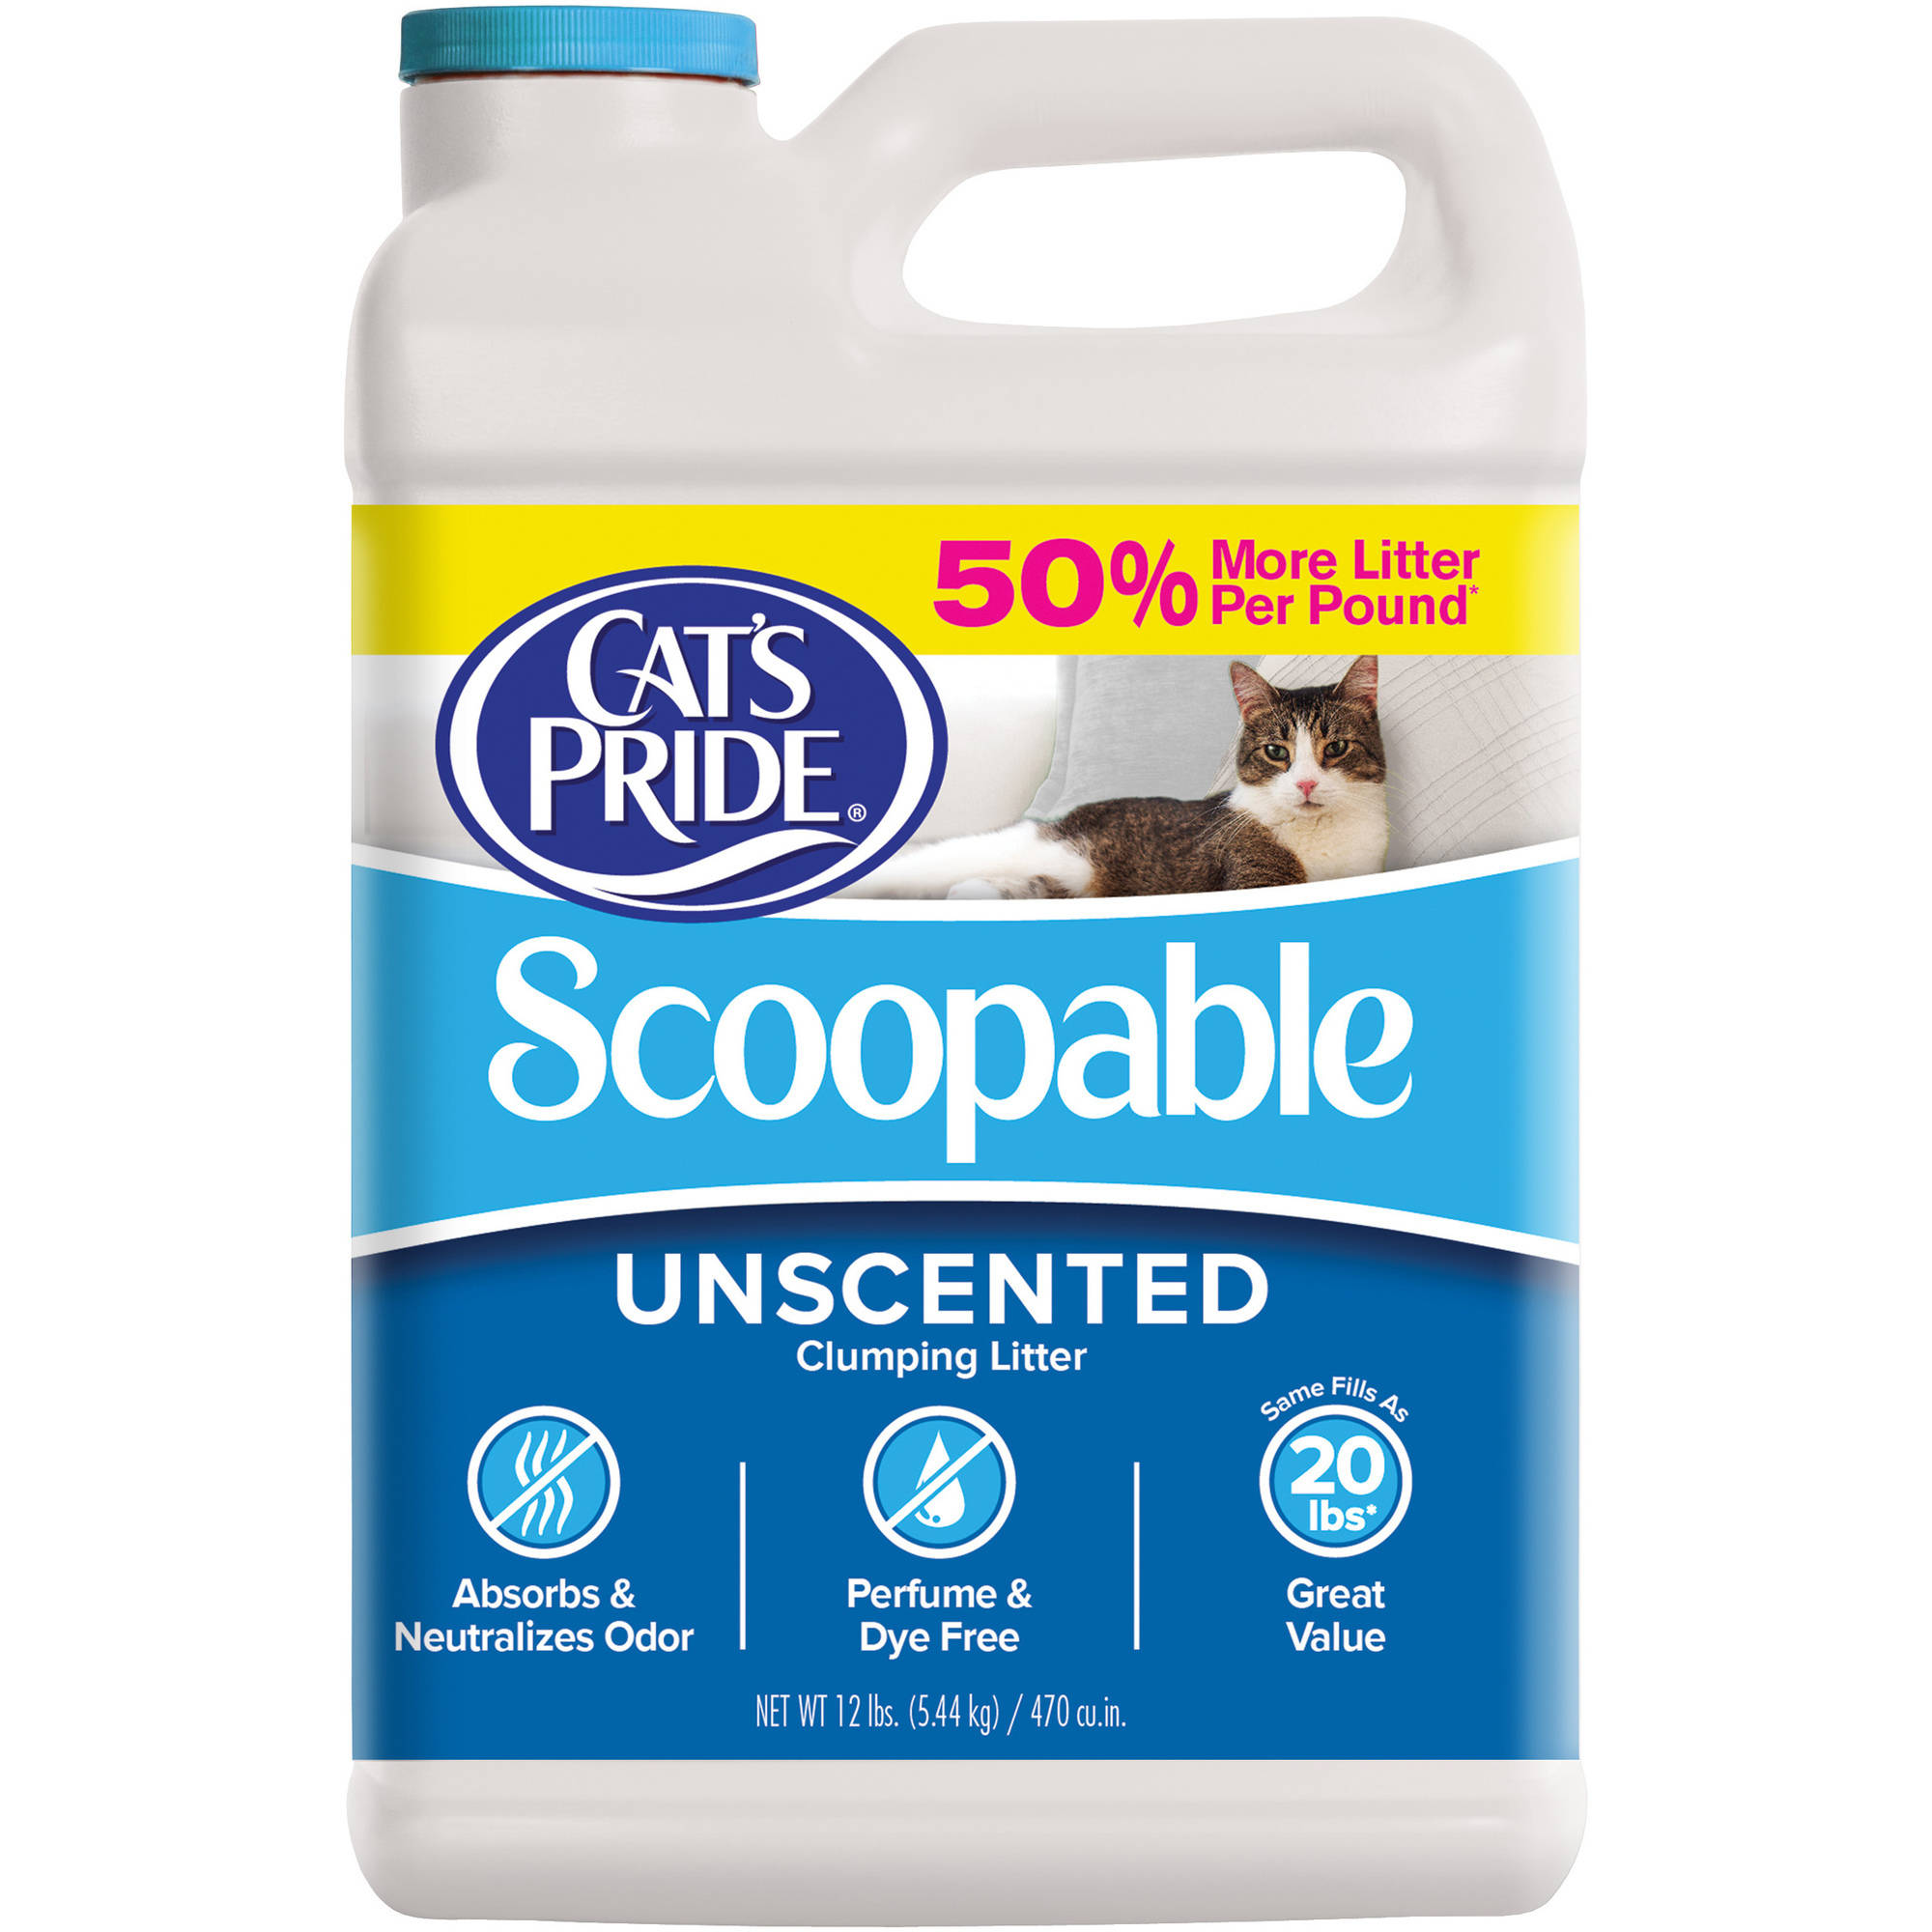 Cat's Pride Scoopable Unscented Litter, 12 lbs